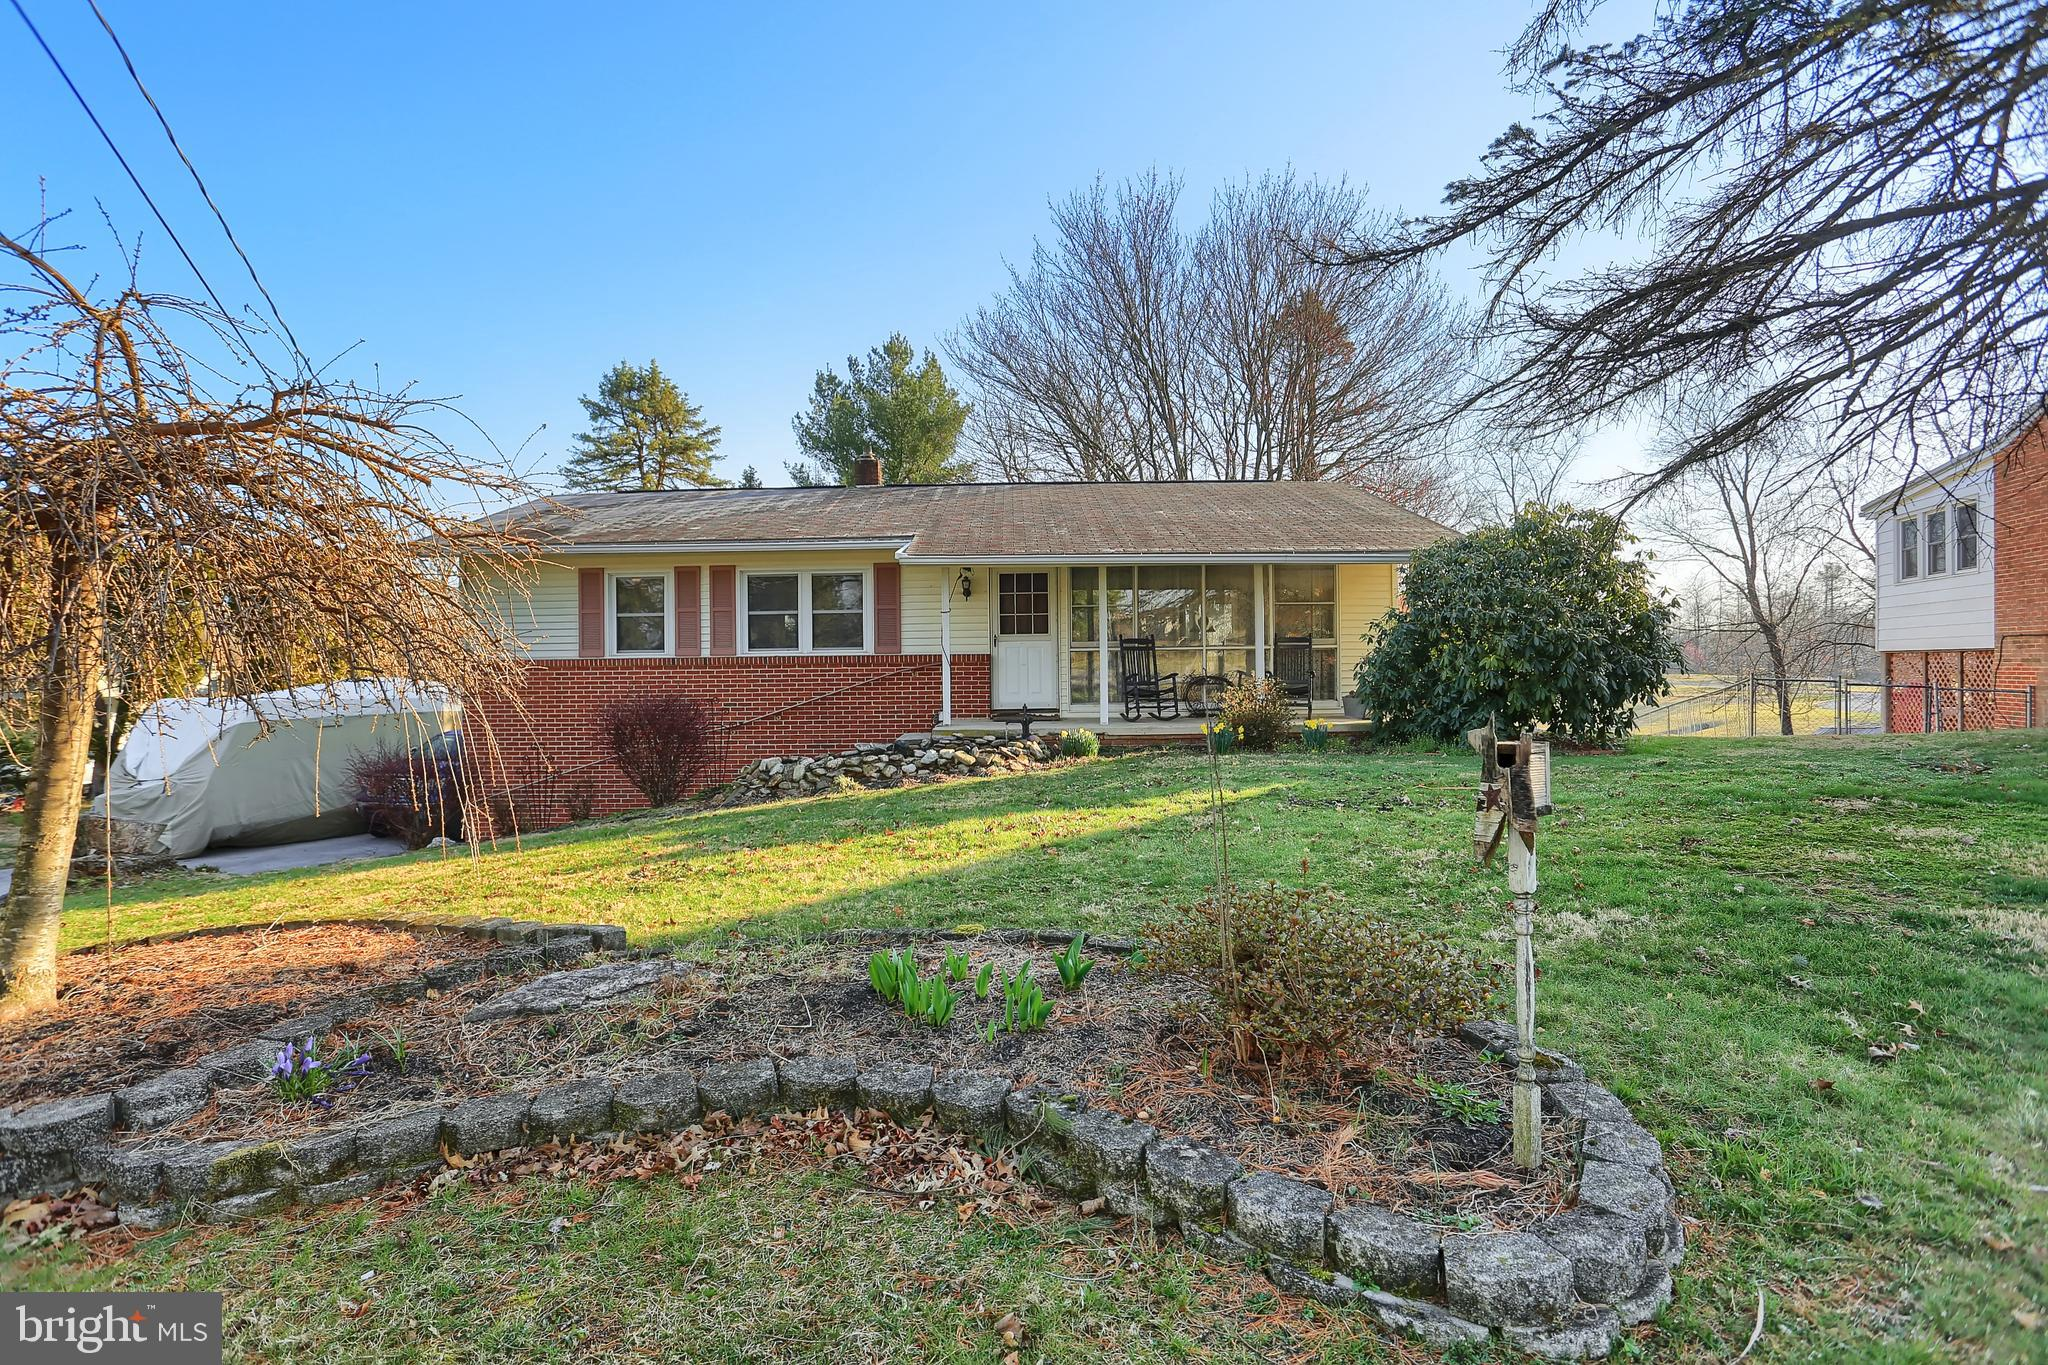 302 MCLAND ROAD, MOUNT HOLLY SPRINGS, PA 17065